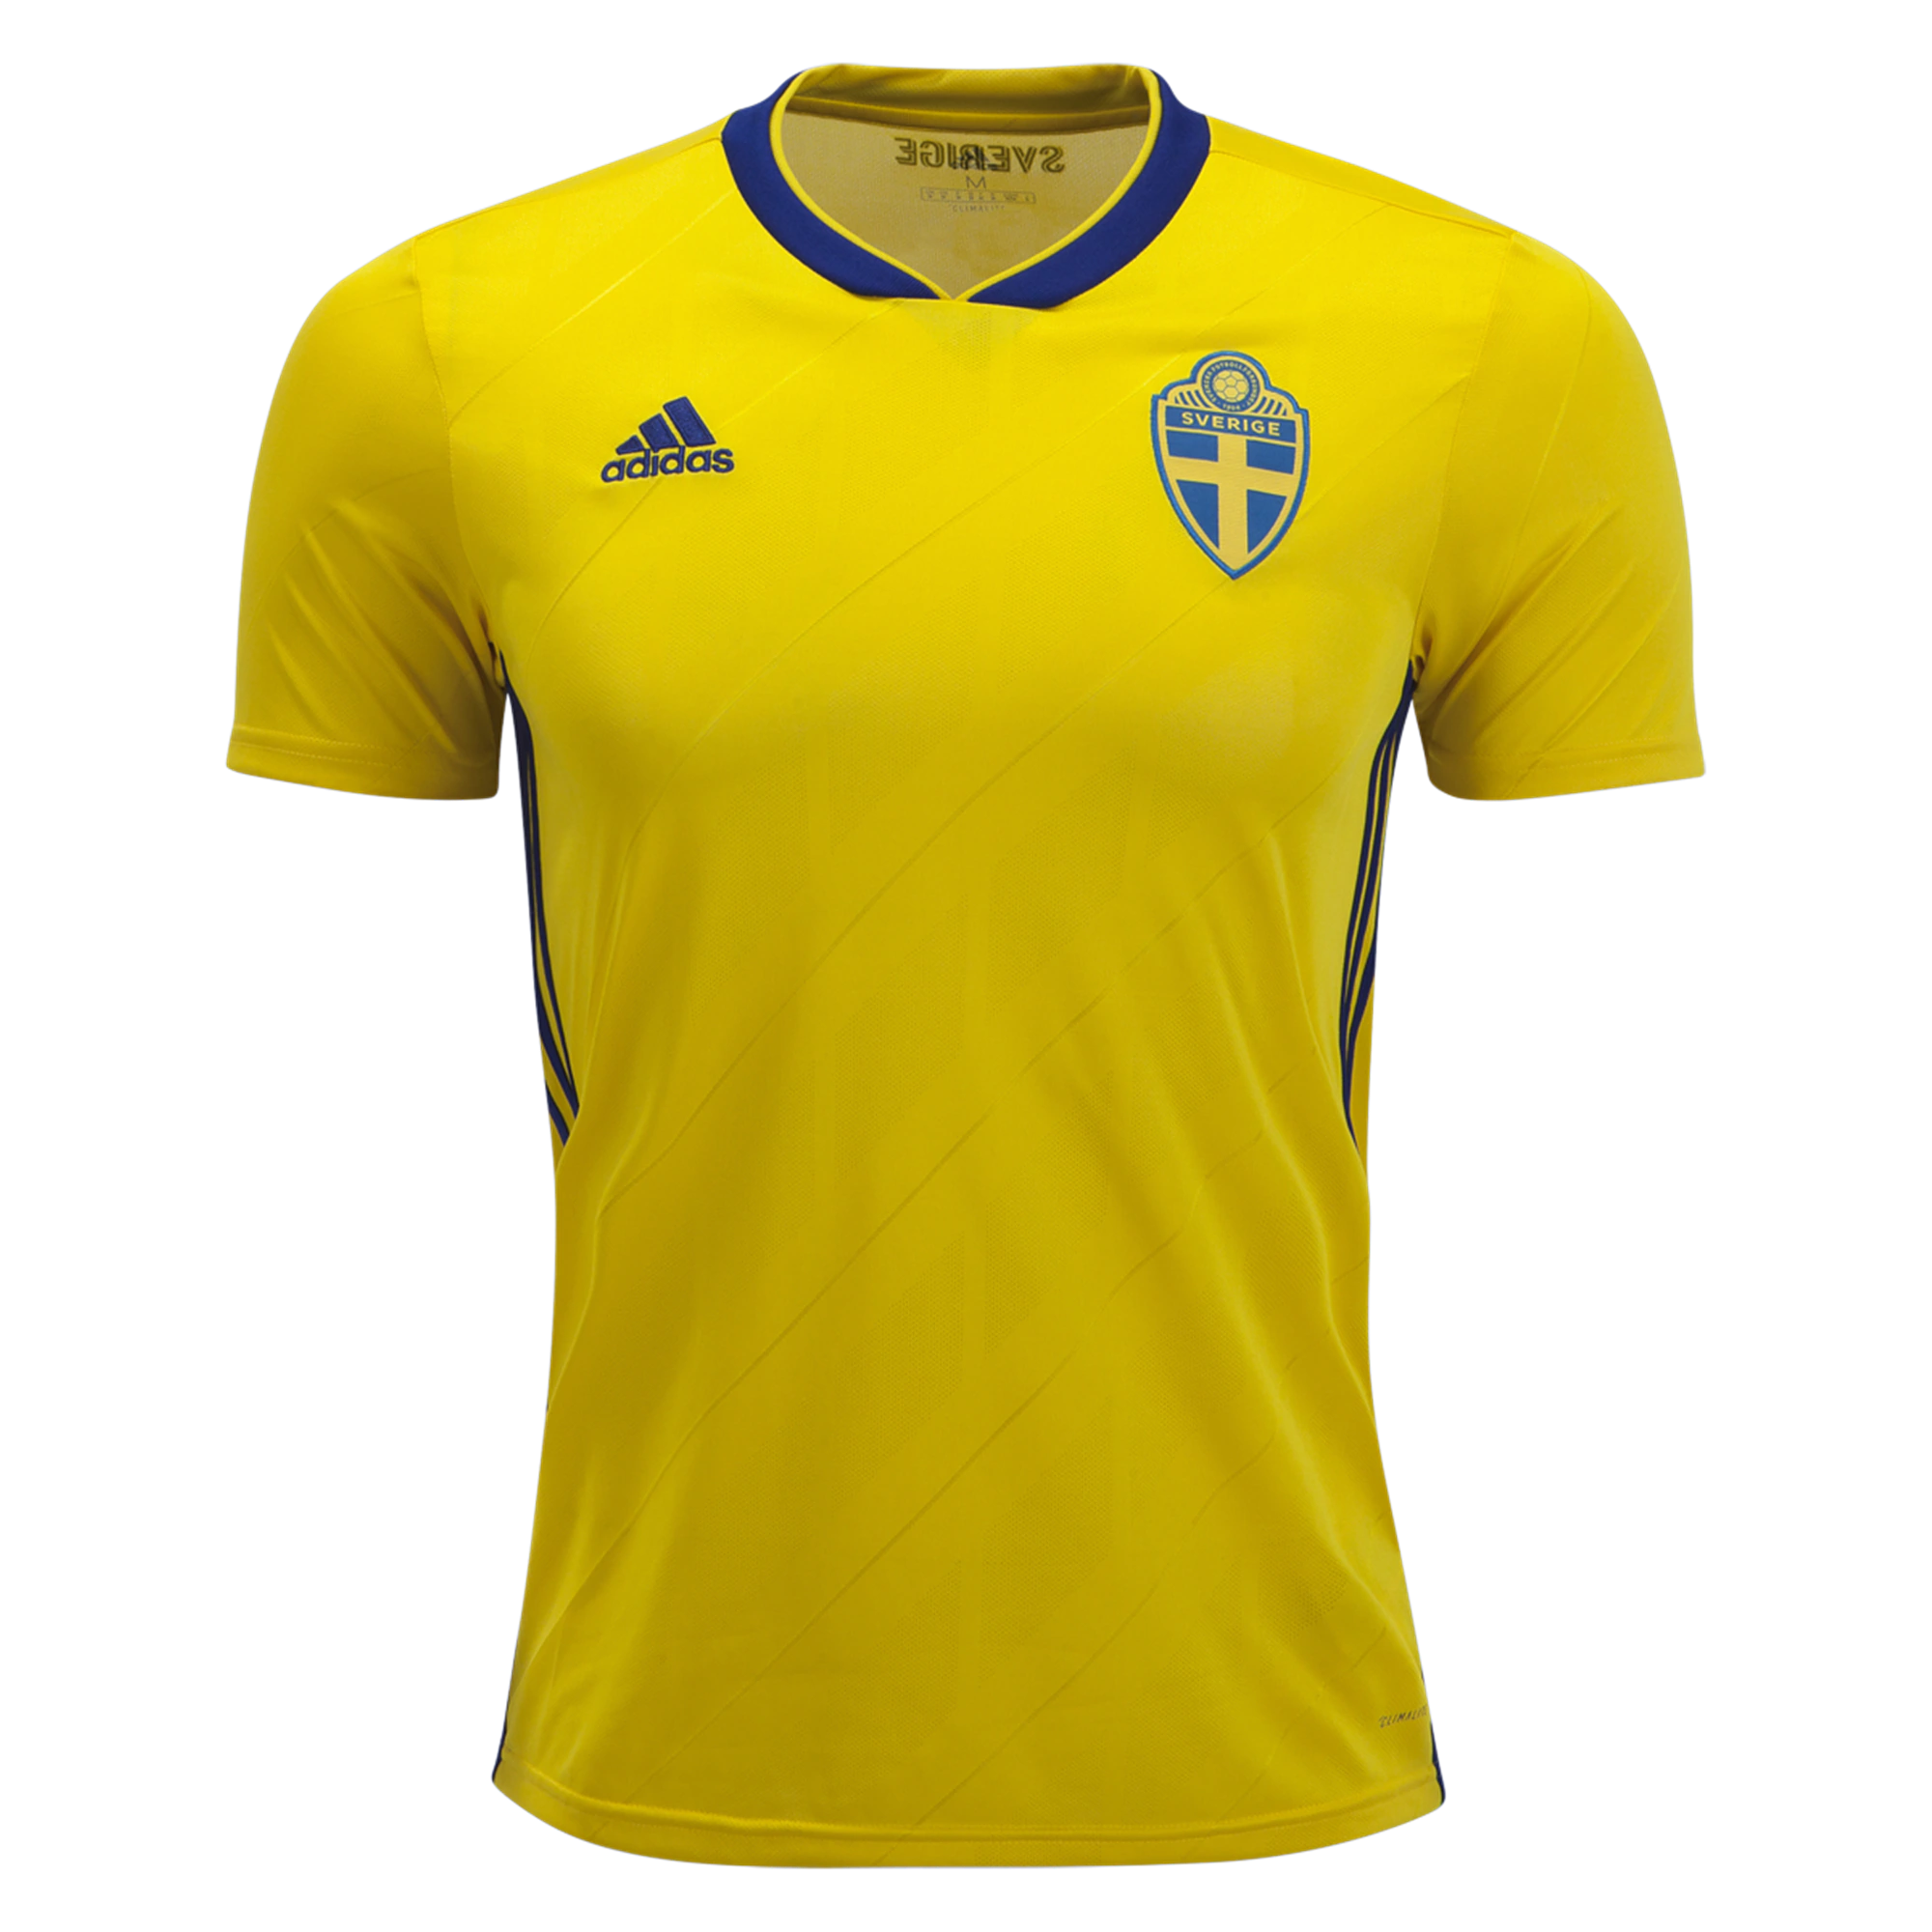 adidas Sweden Home Jersey 2018 ( 89.99). Want to reminisce about Sweden s  awesome World Cup ... e4395cfca